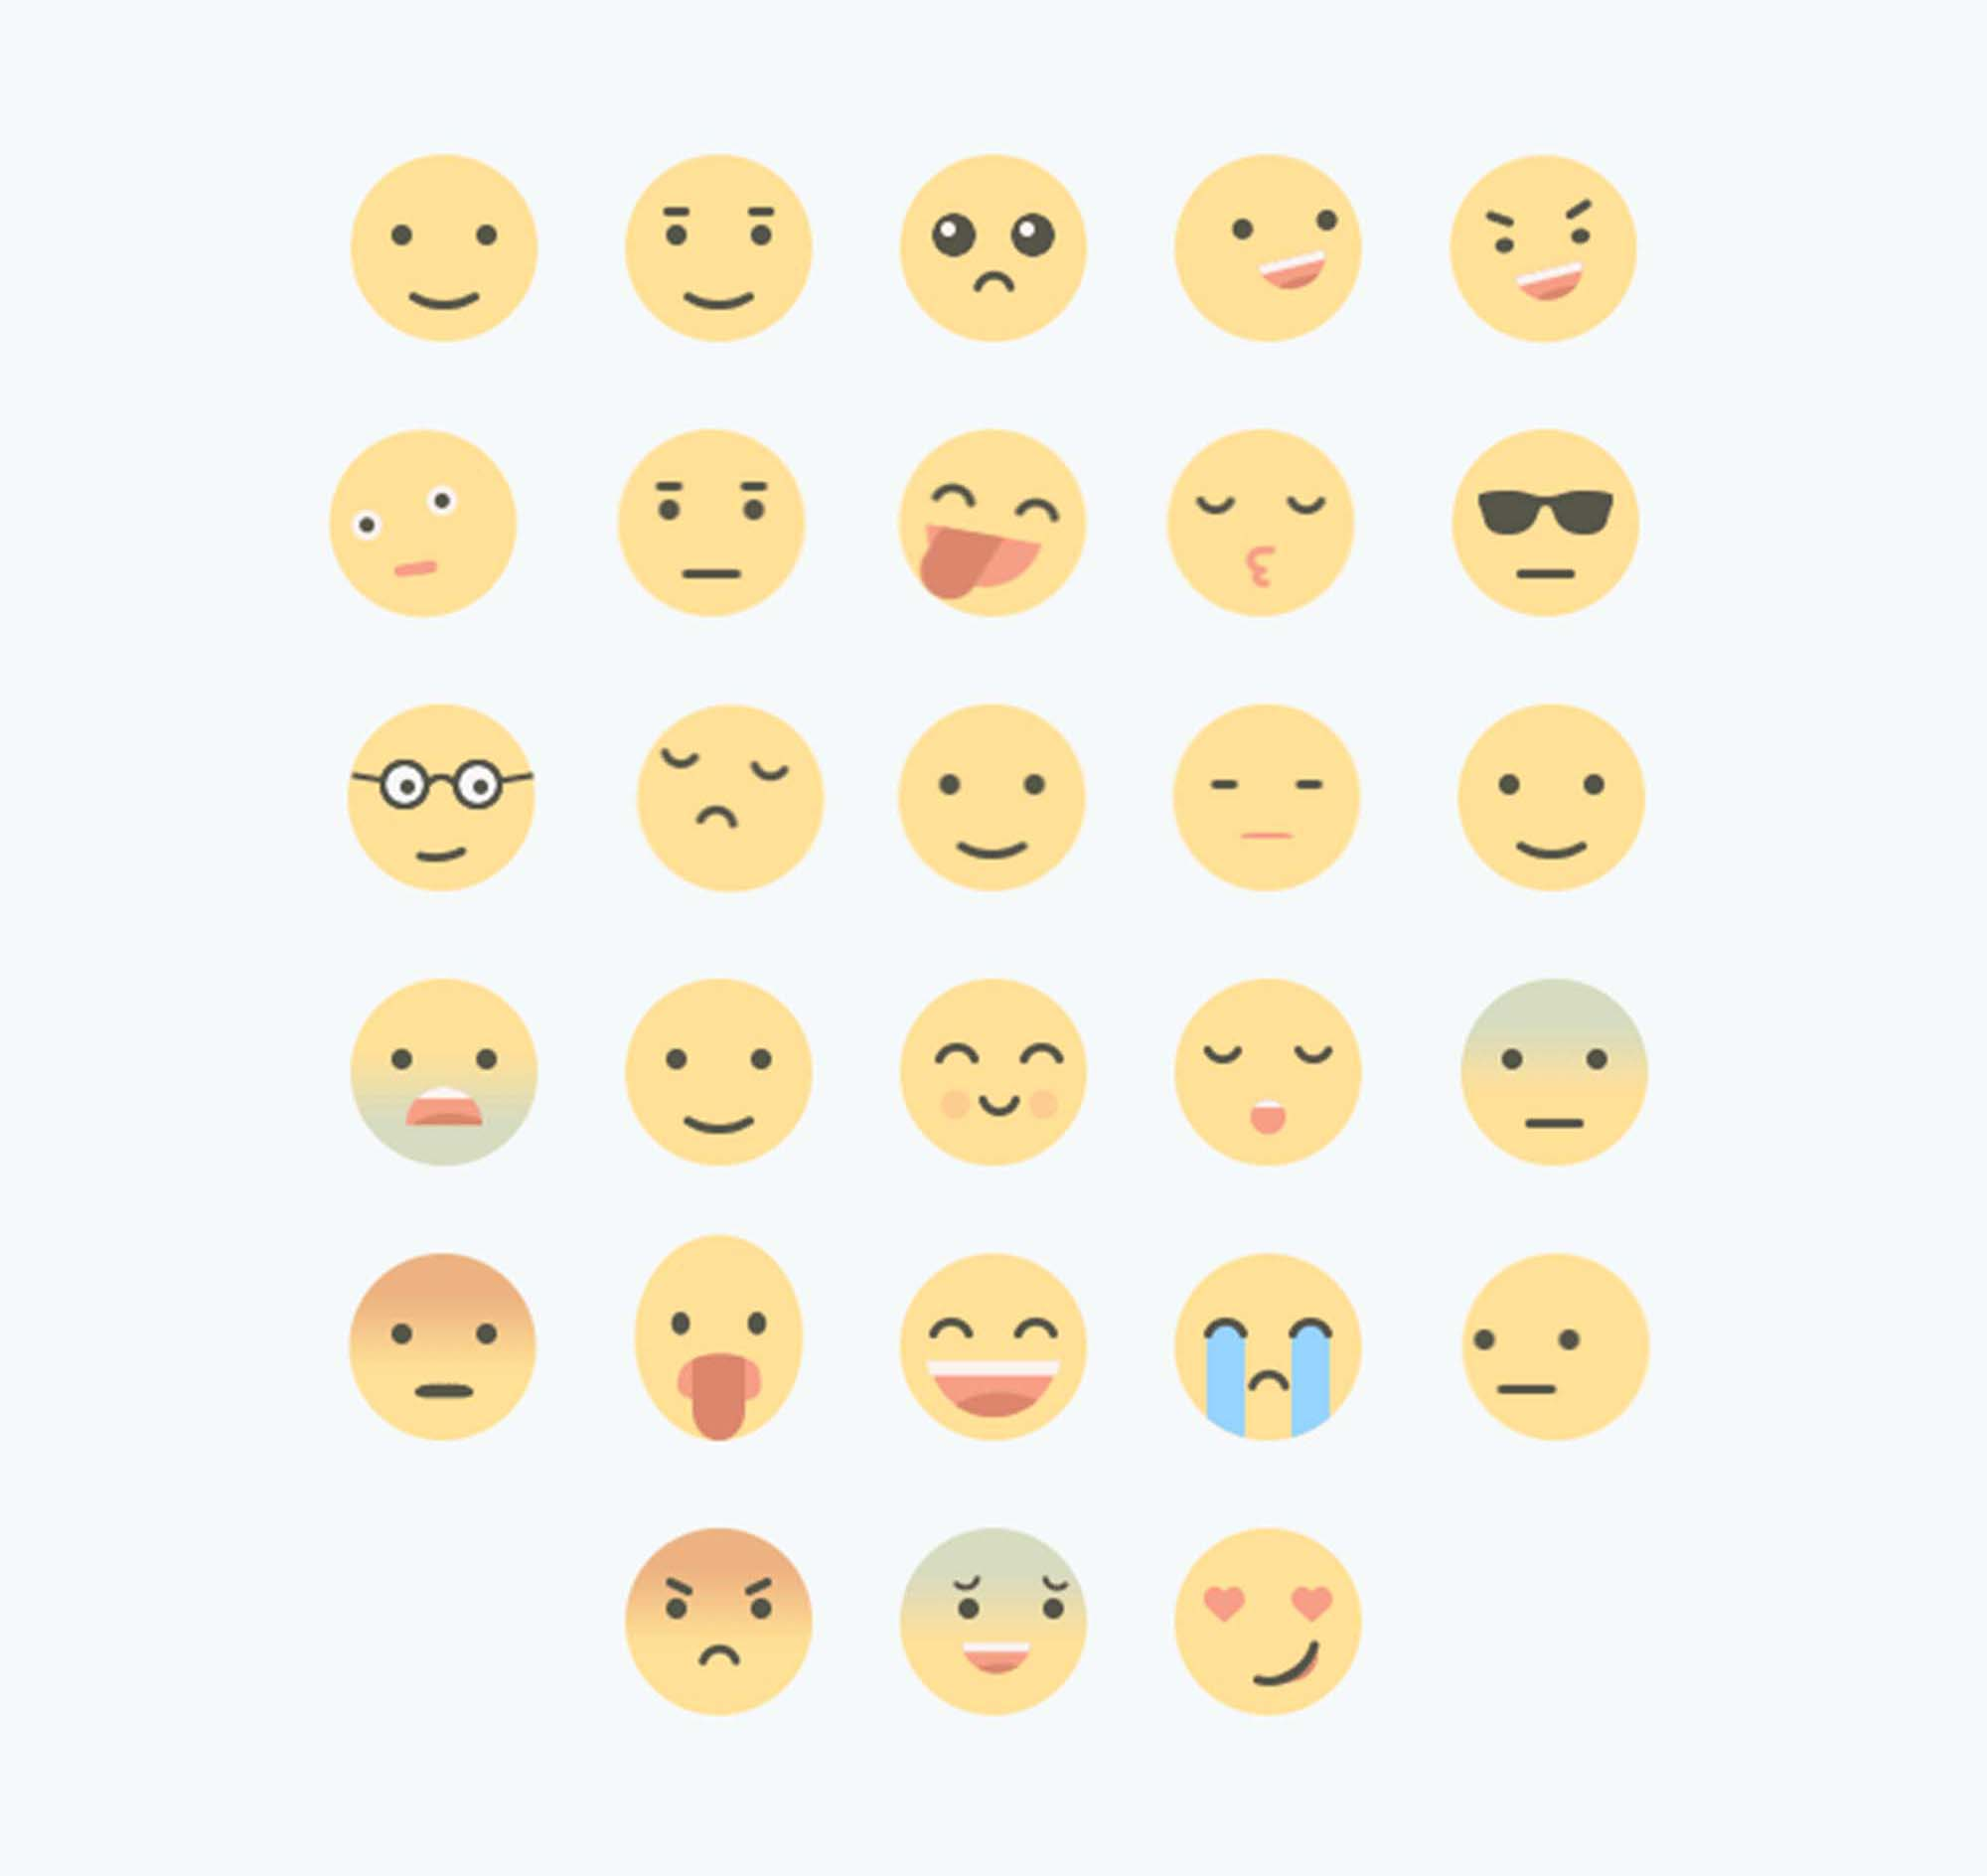 Animated Flat Emojis